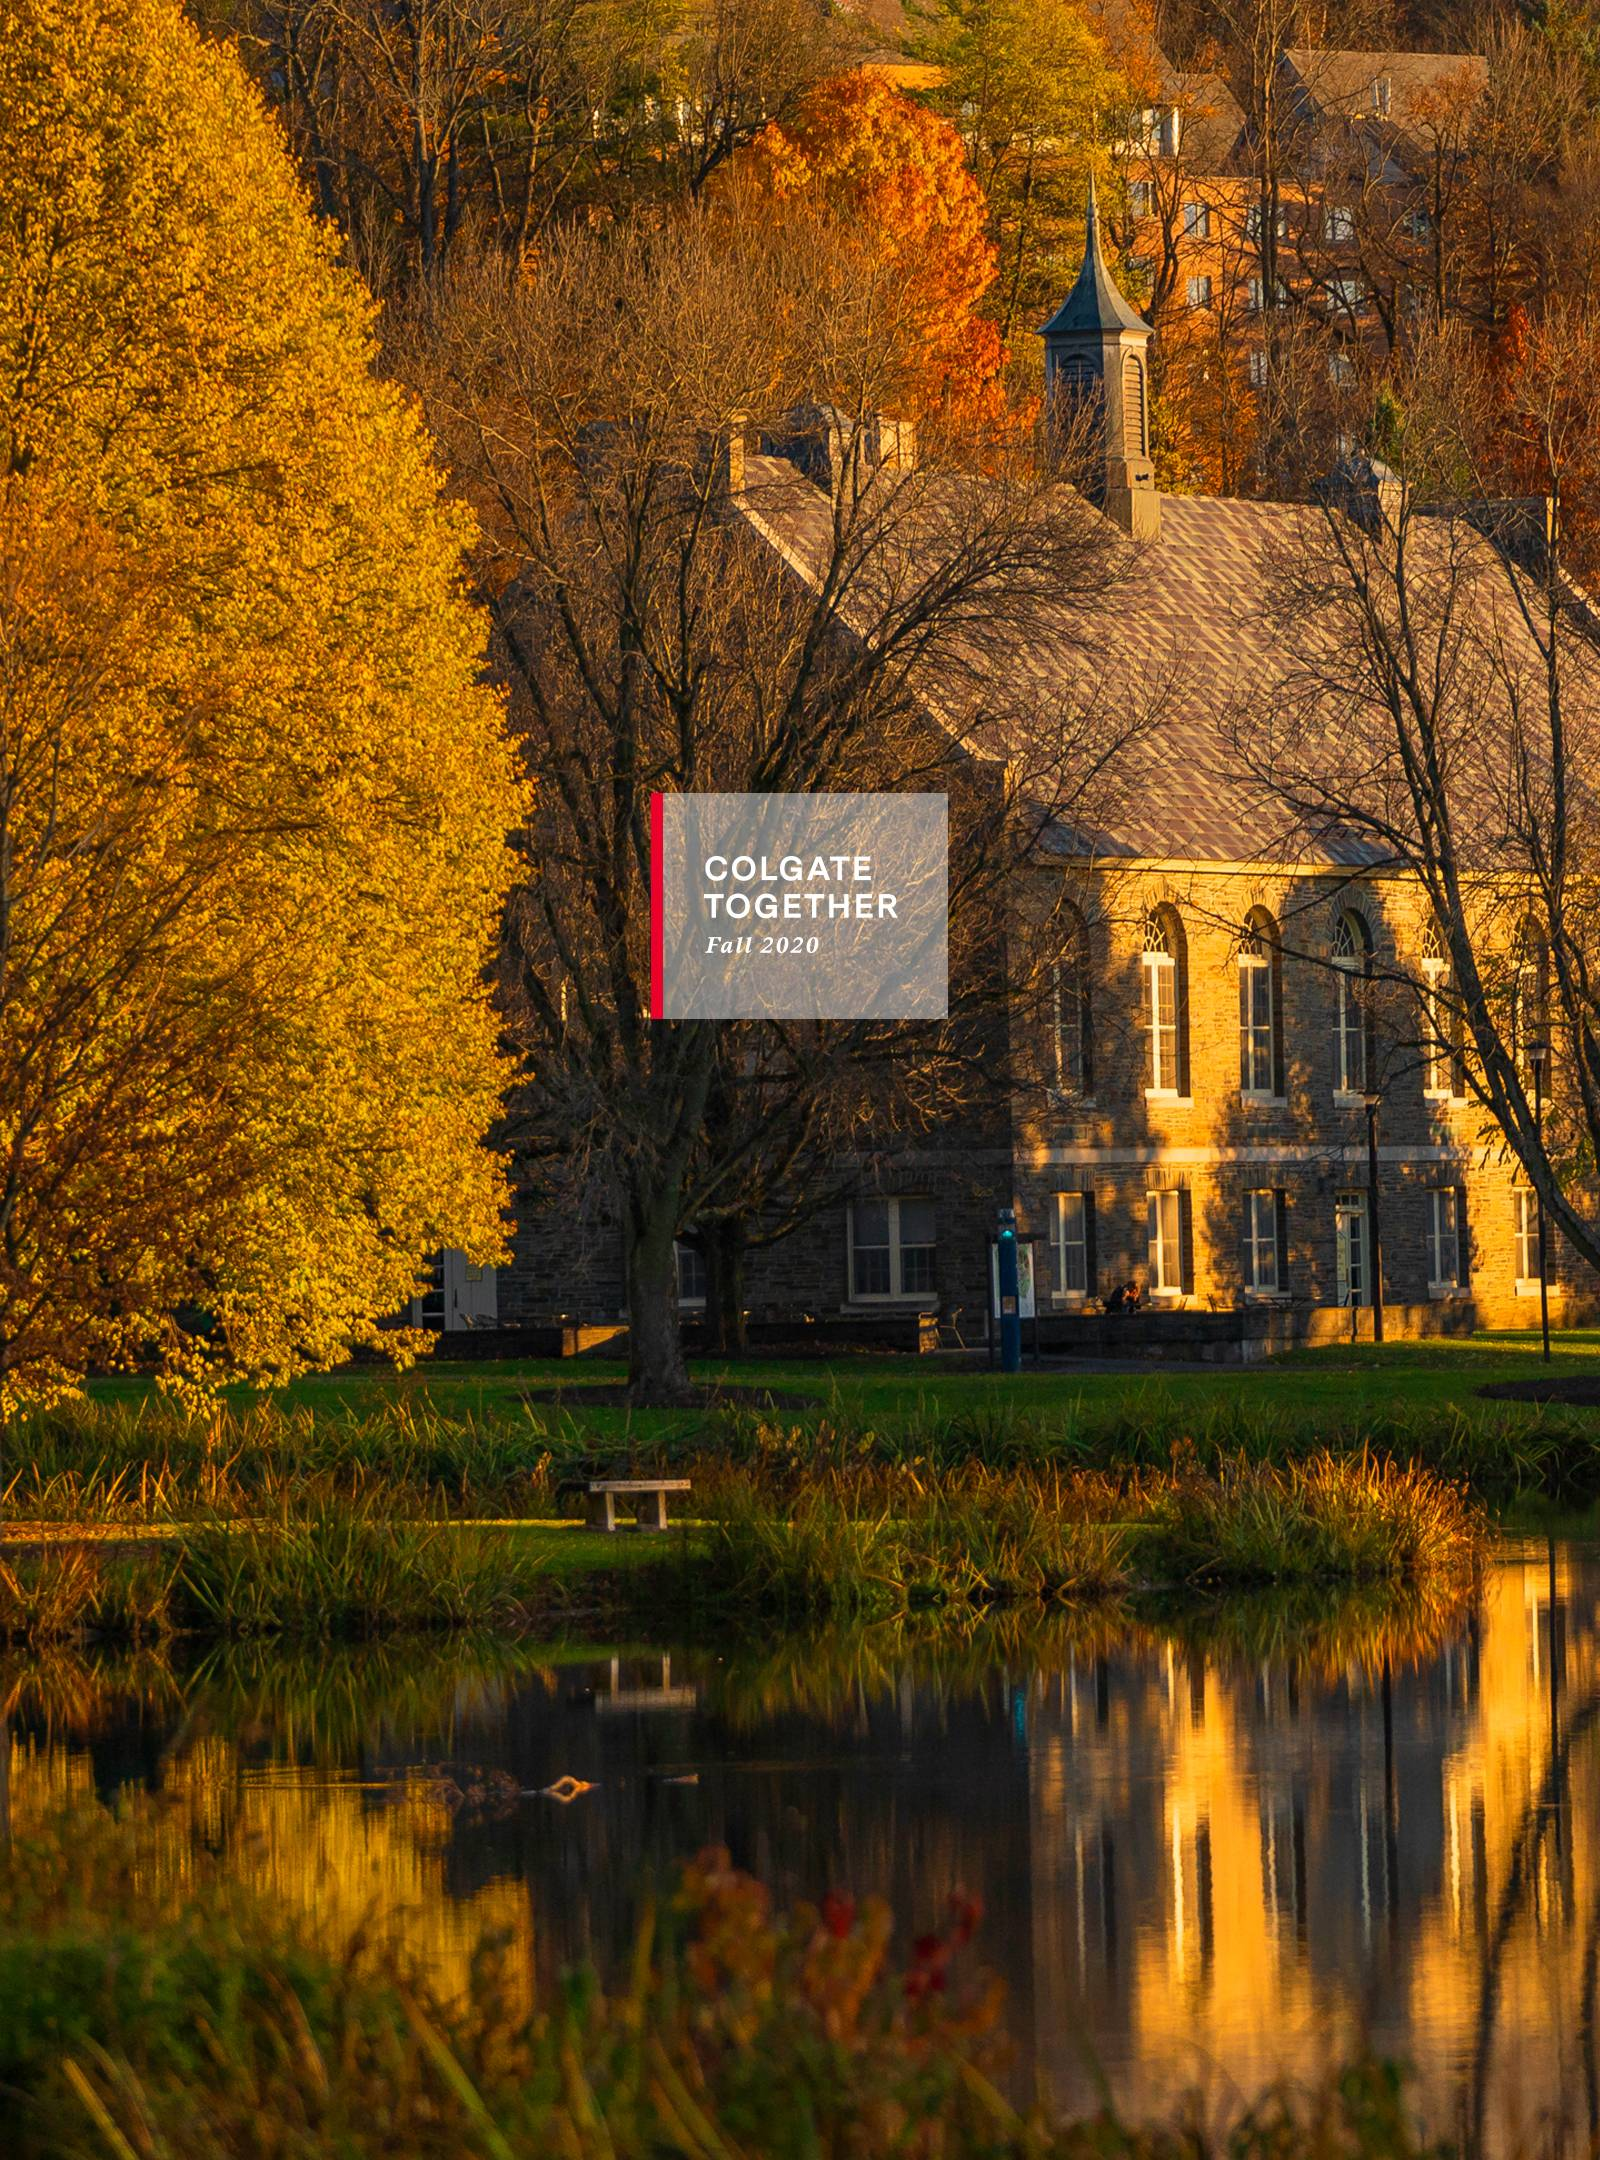 scenic shot of autumn on campus with Colgate Together header